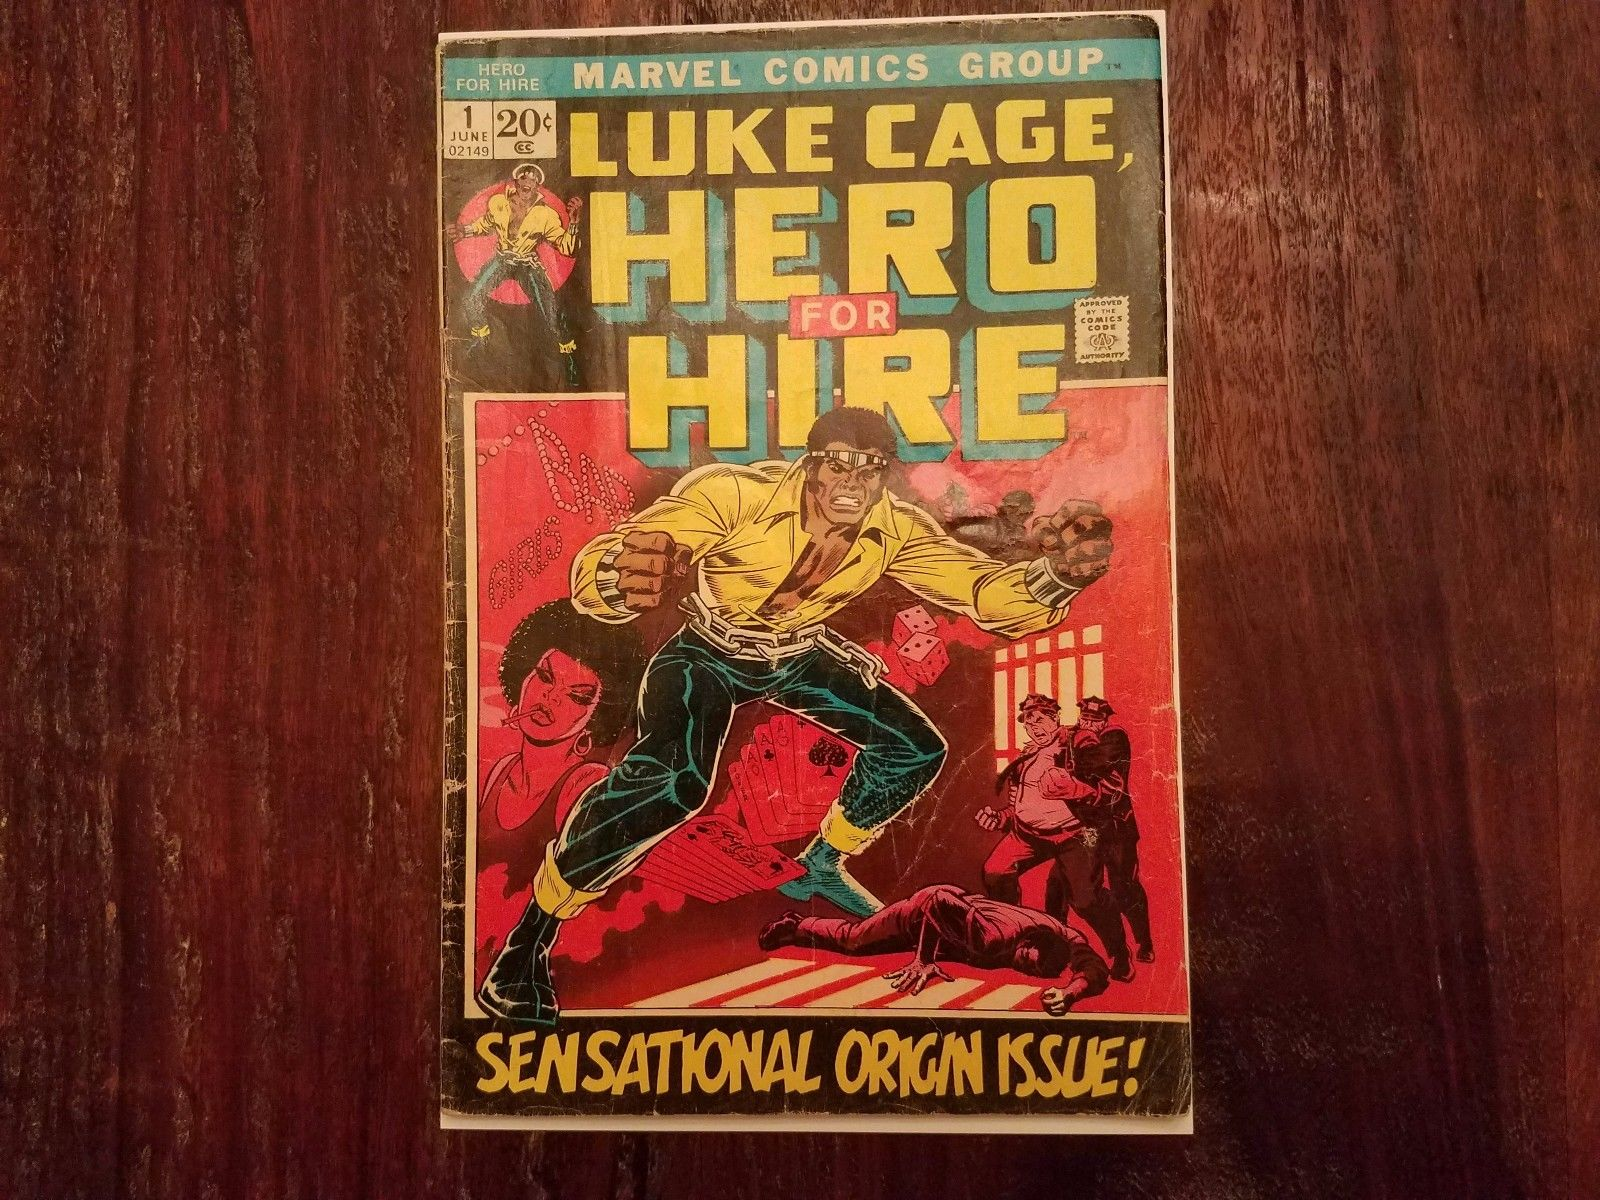 LUKE CAGE, HERO FOR HIRE #1 (Marvel 1972) - Origin Issue Netflix - Power Man